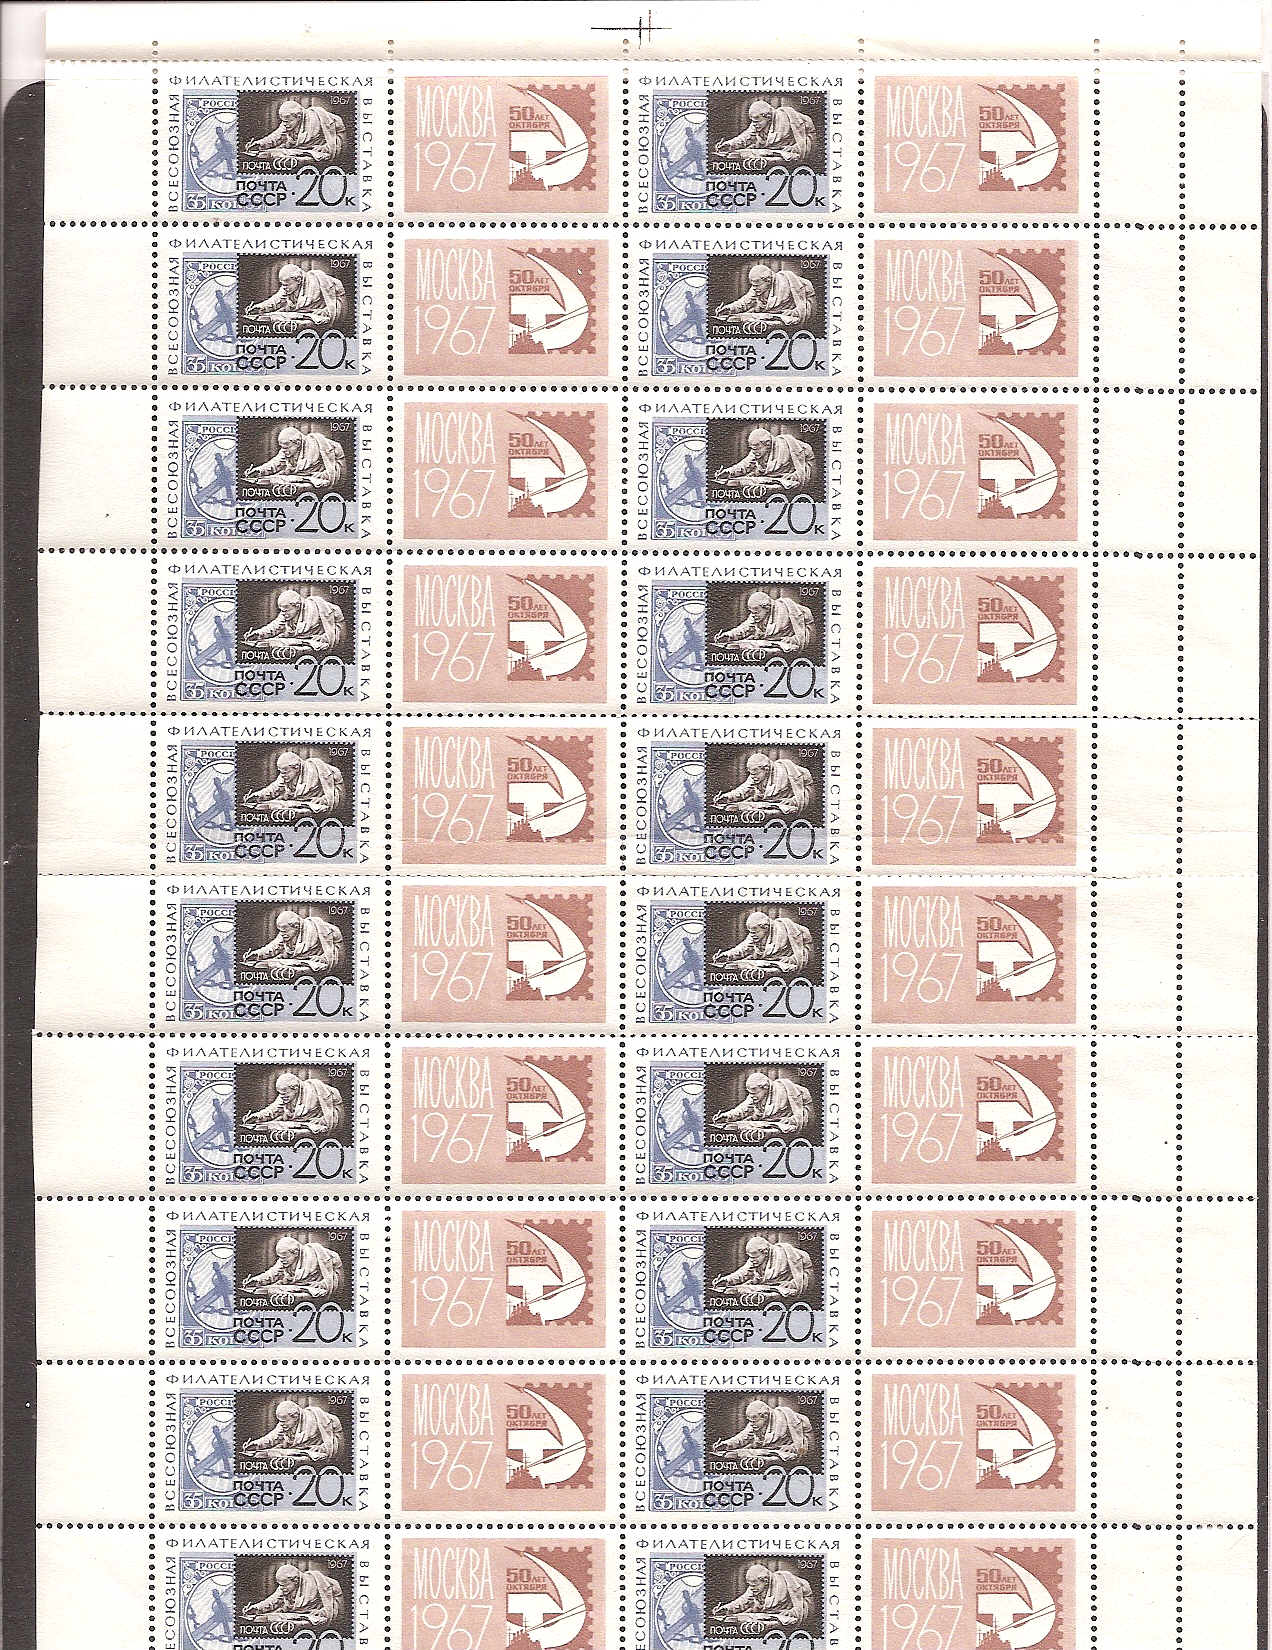 Russia-Soviet Republic Stamp Issues 1967-1975 YEAR 1967 Scott 3331